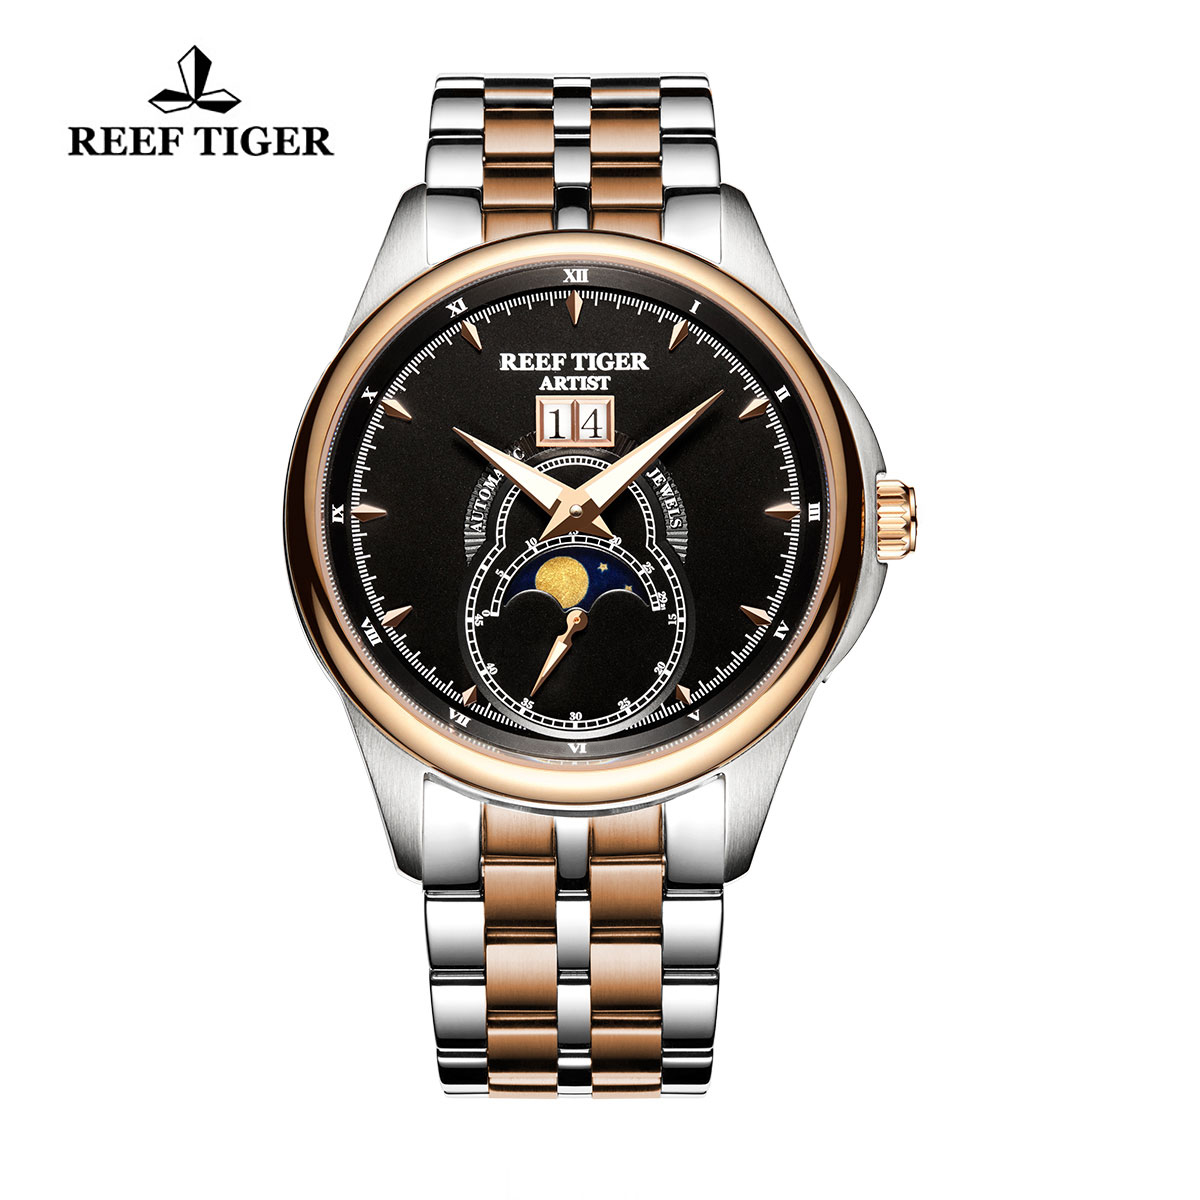 Reef Tiger Knighthood Casual Watch with Dual Calendar Black Dial Two Tone Case RGA1928-PBT